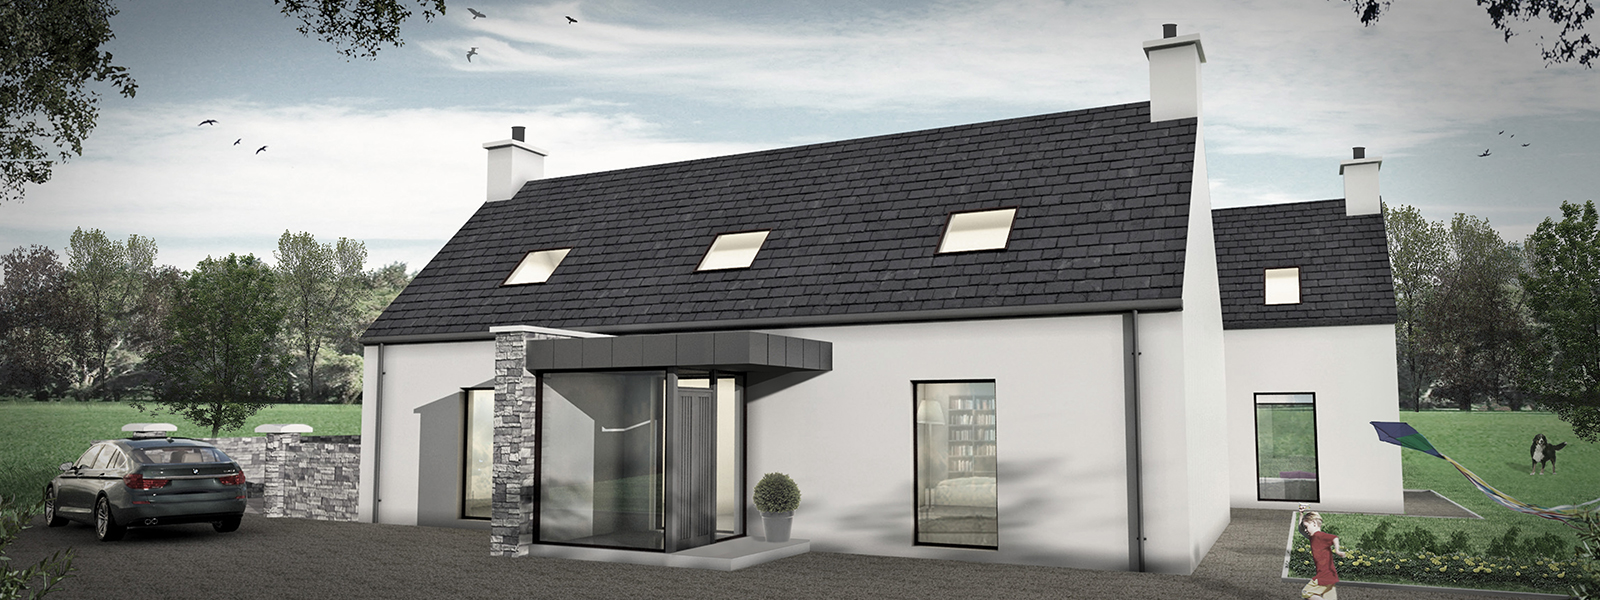 Rural house plans ireland escortsea for Irish house plans